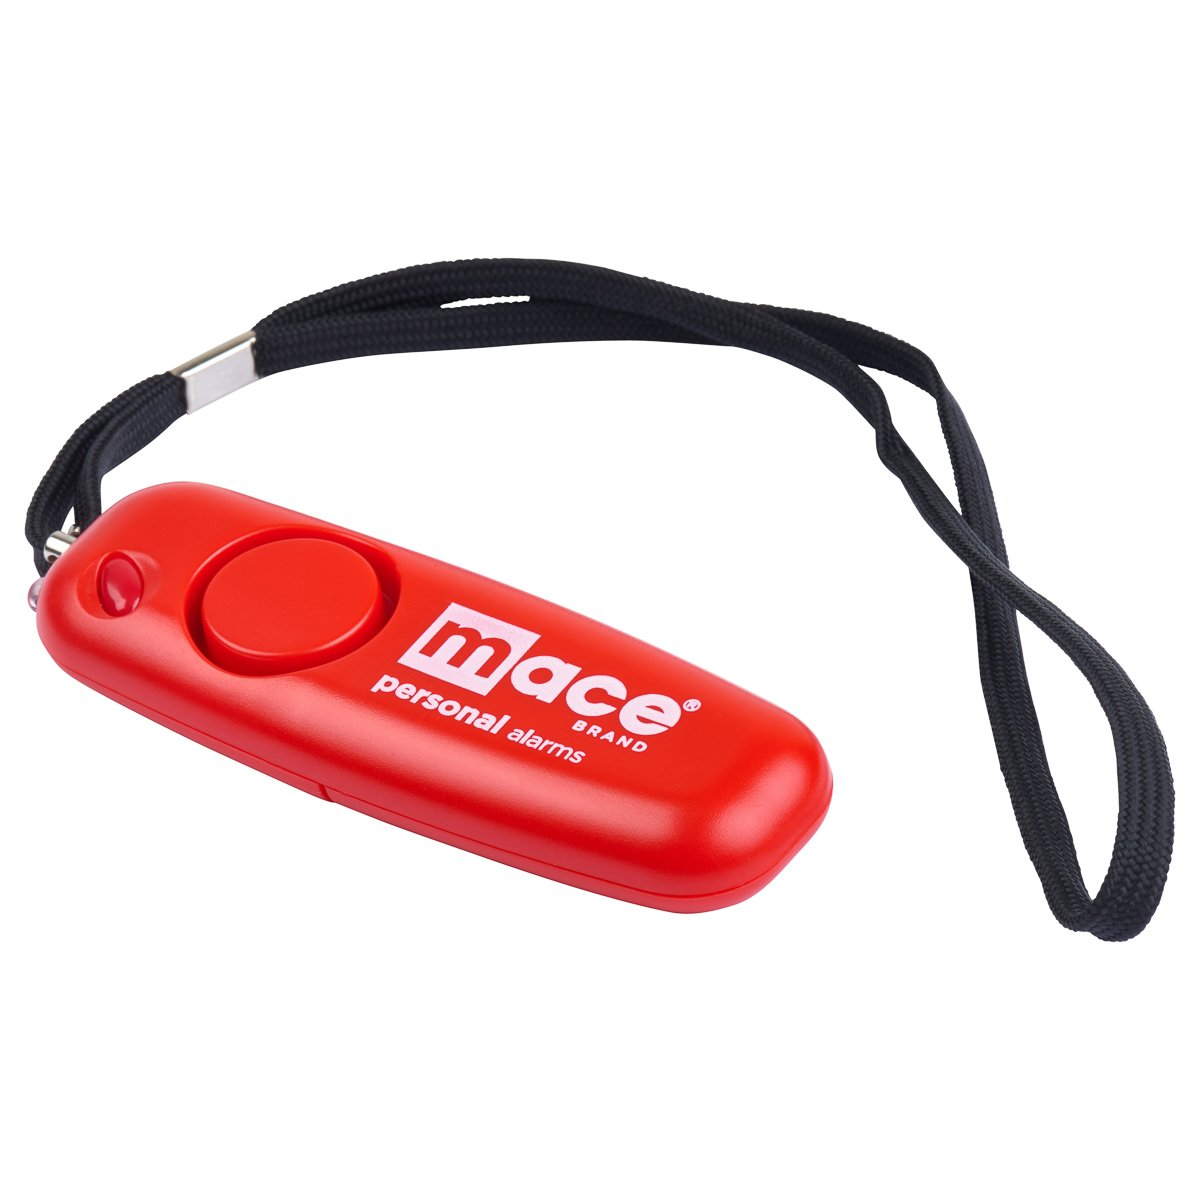 Mace Brand 130dB Alarm with LED Flashlight, Rip Cord Grenade Pin Activation and Included AAA Batteries